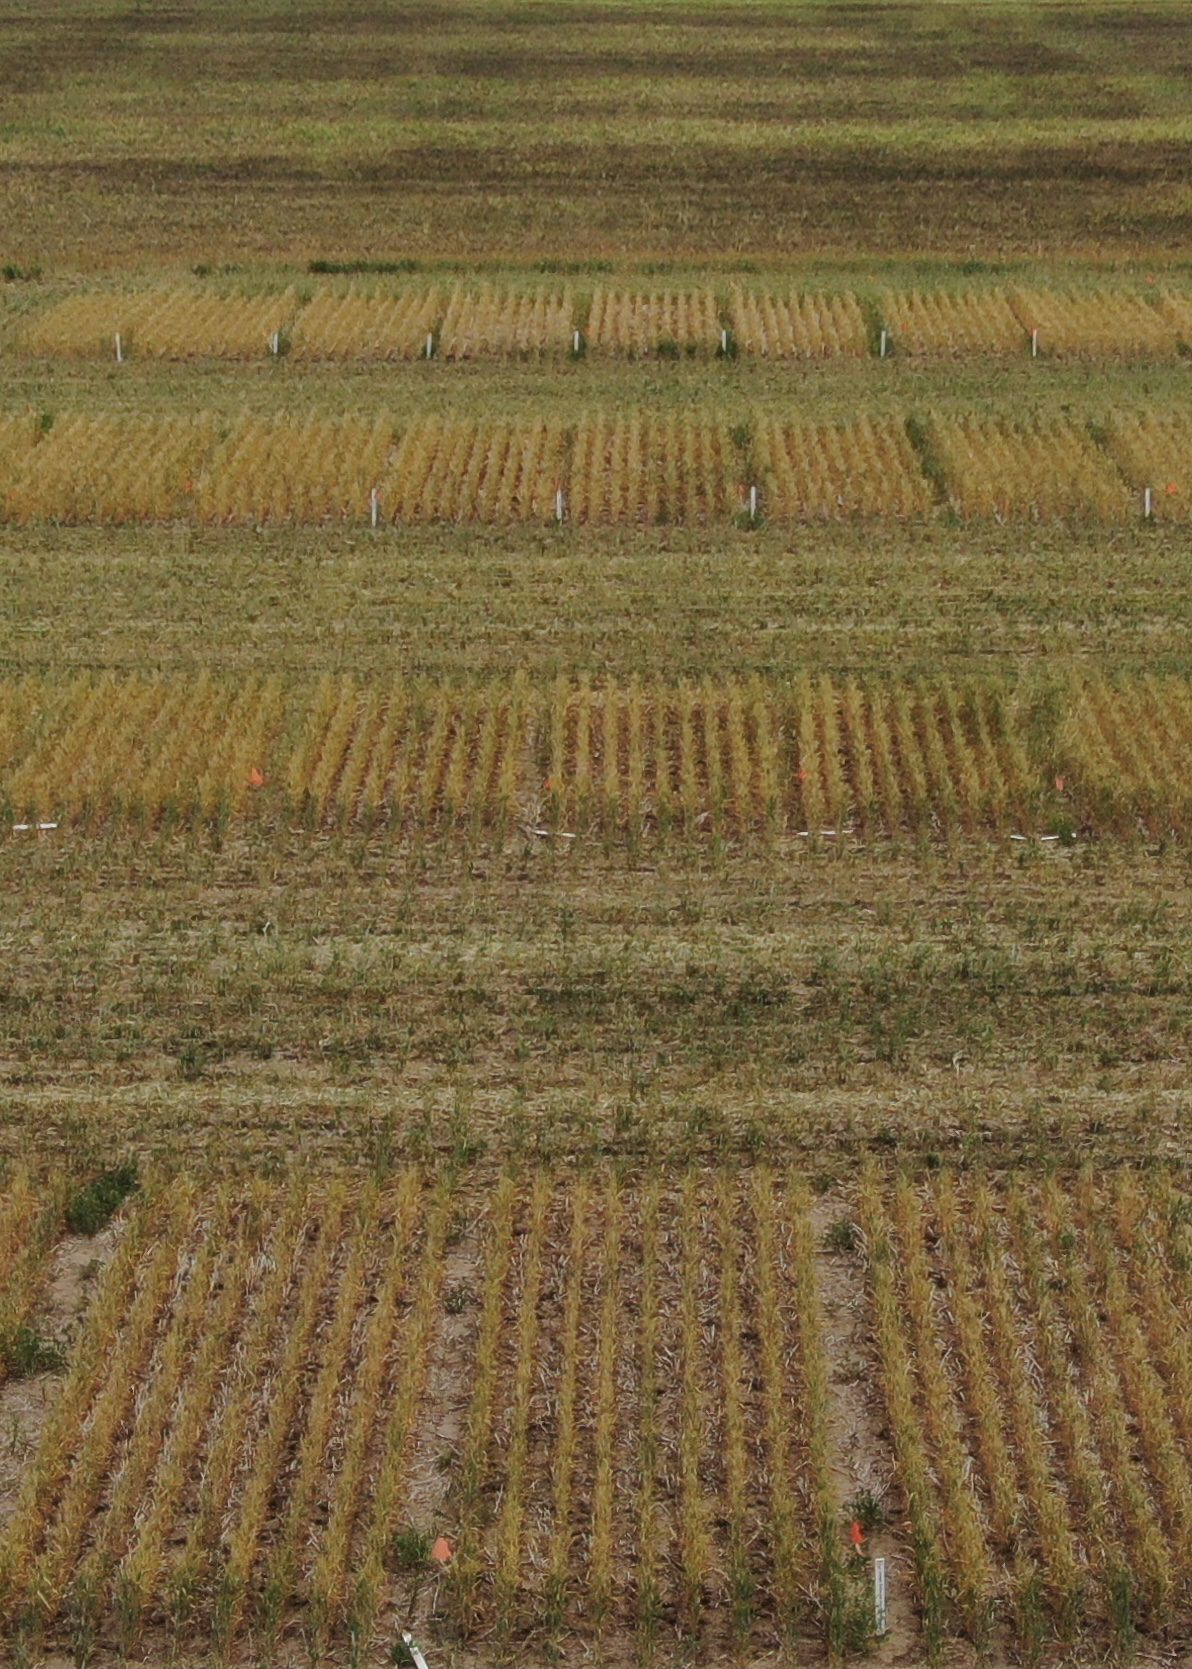 Increasing Seeding Rate to manage FHB in Wheat